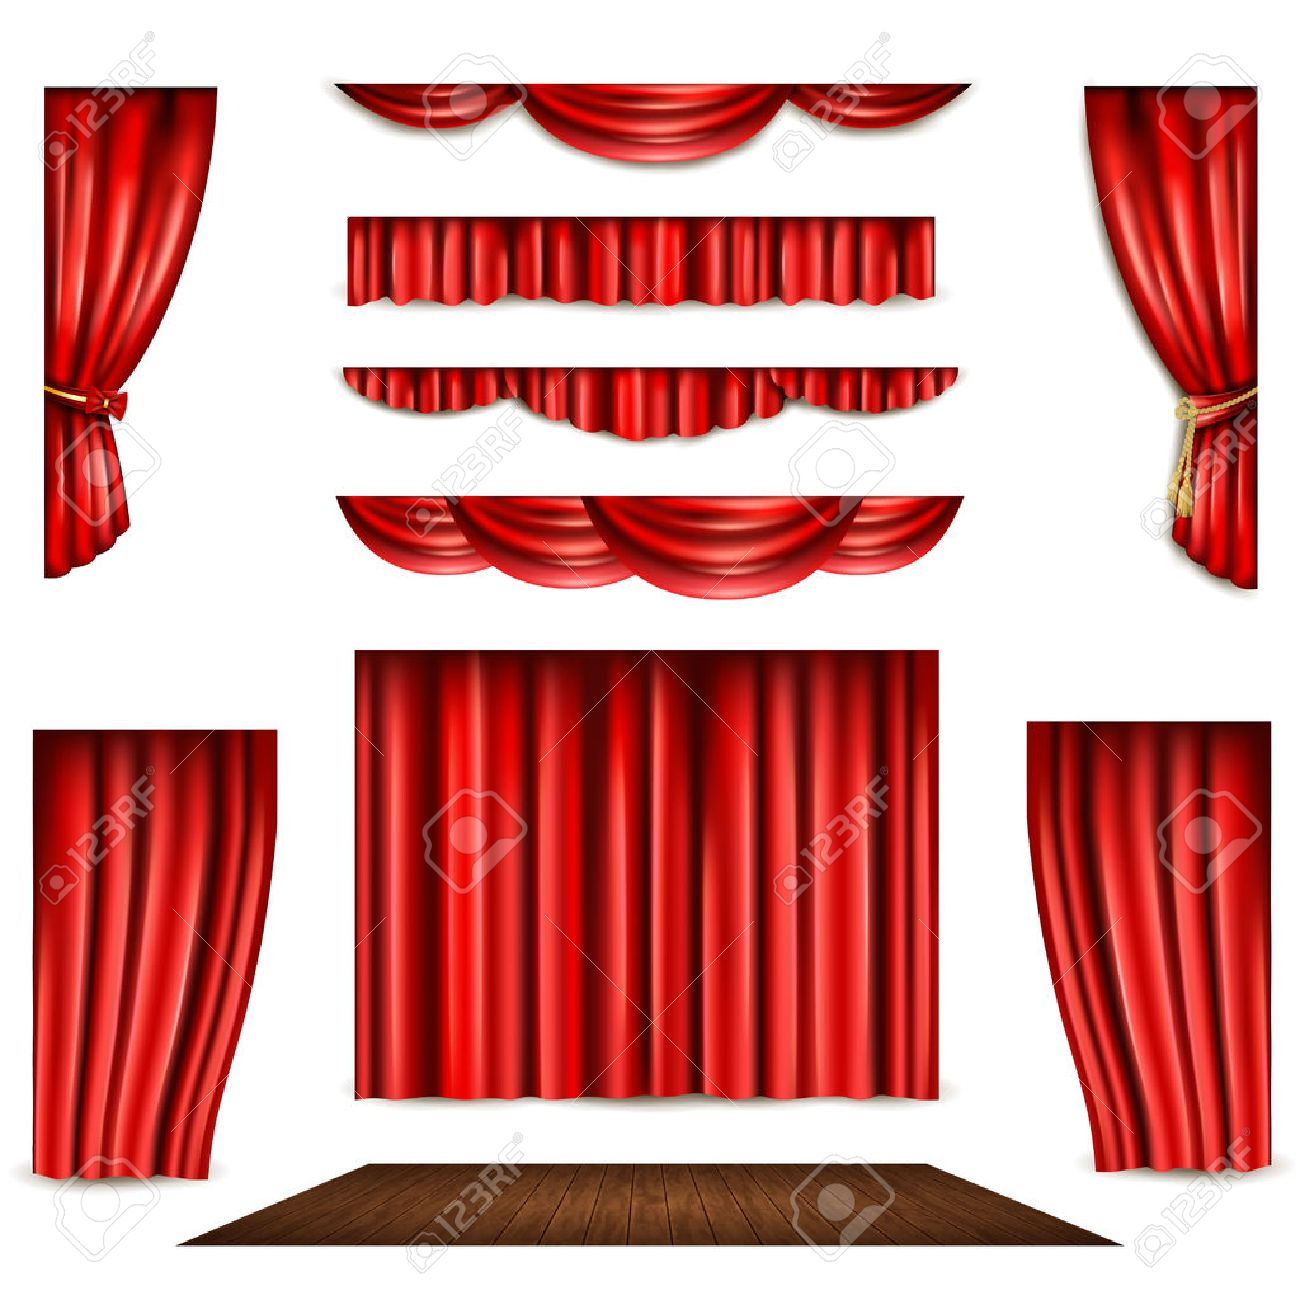 Red theatre curtain in different shape and wooden stage realistic isolated vector illustration - 49547572